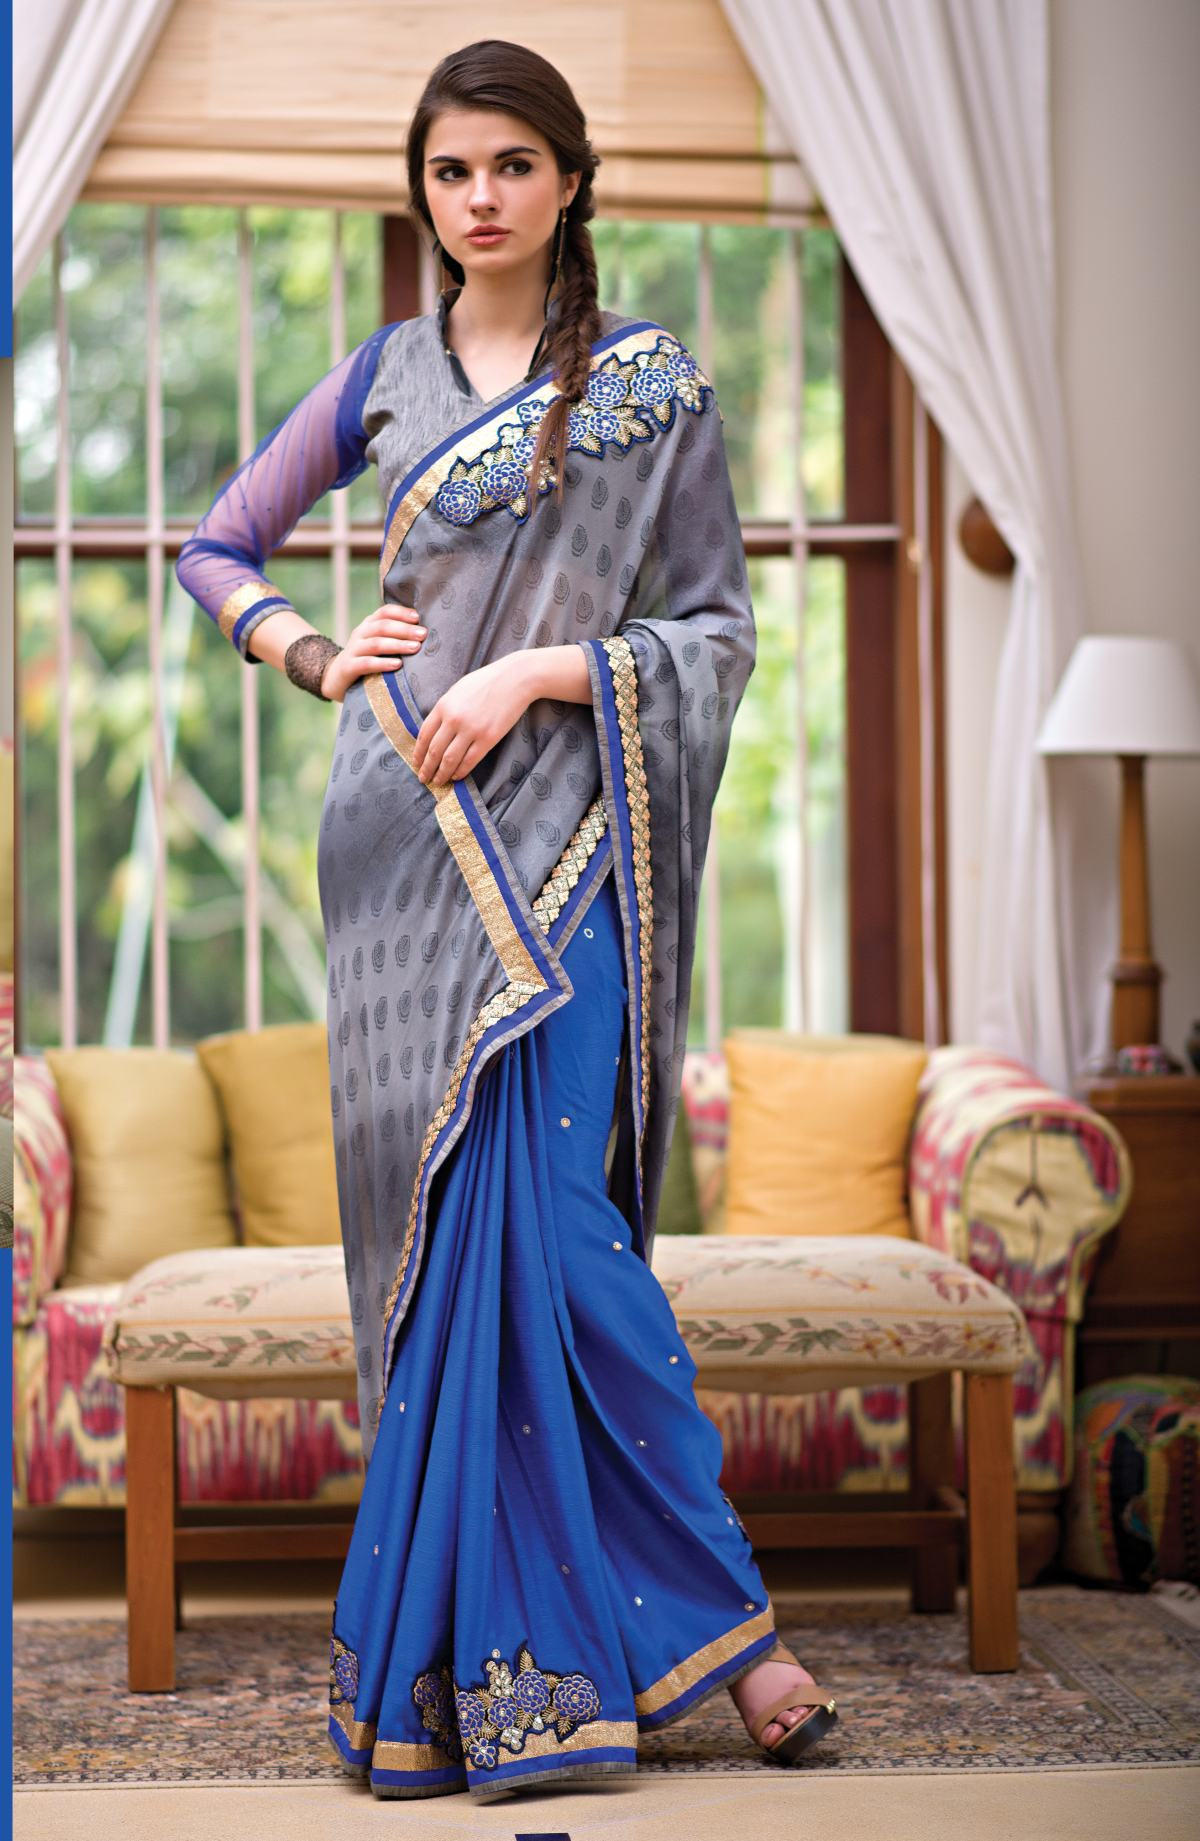 Triveni Majestic Blue Colored Stone Worked Silk Georgette Saree 48004